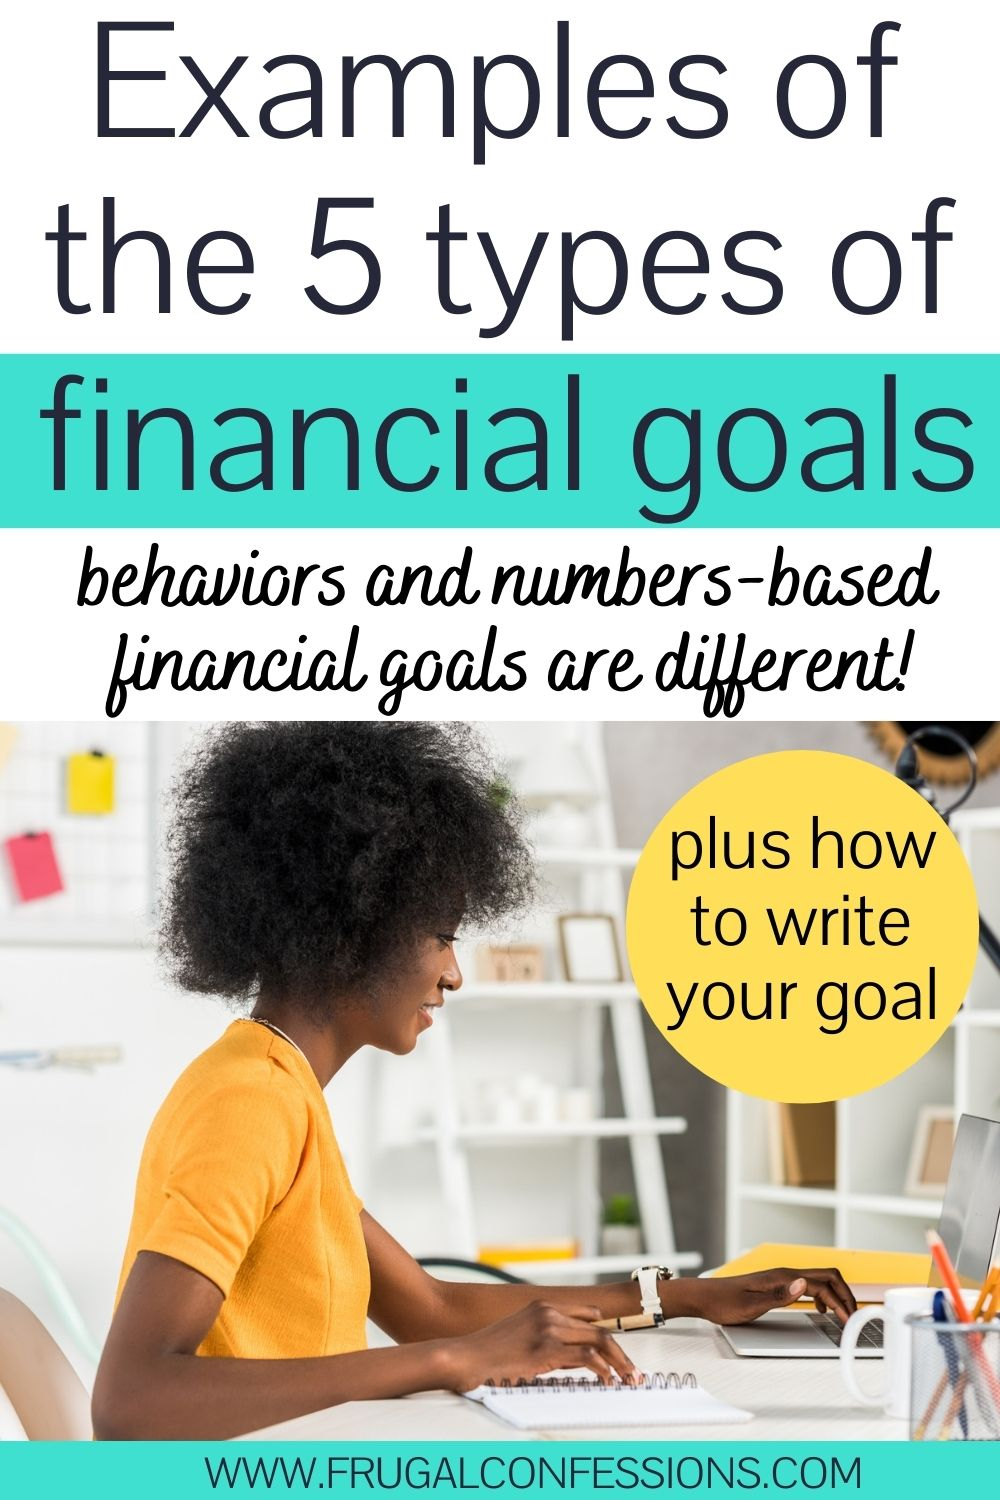 """young woman in yellow shirt at desk, smiling, text overlay """"examples of the 5 types of financial goals - plus how to write your financial goal"""""""